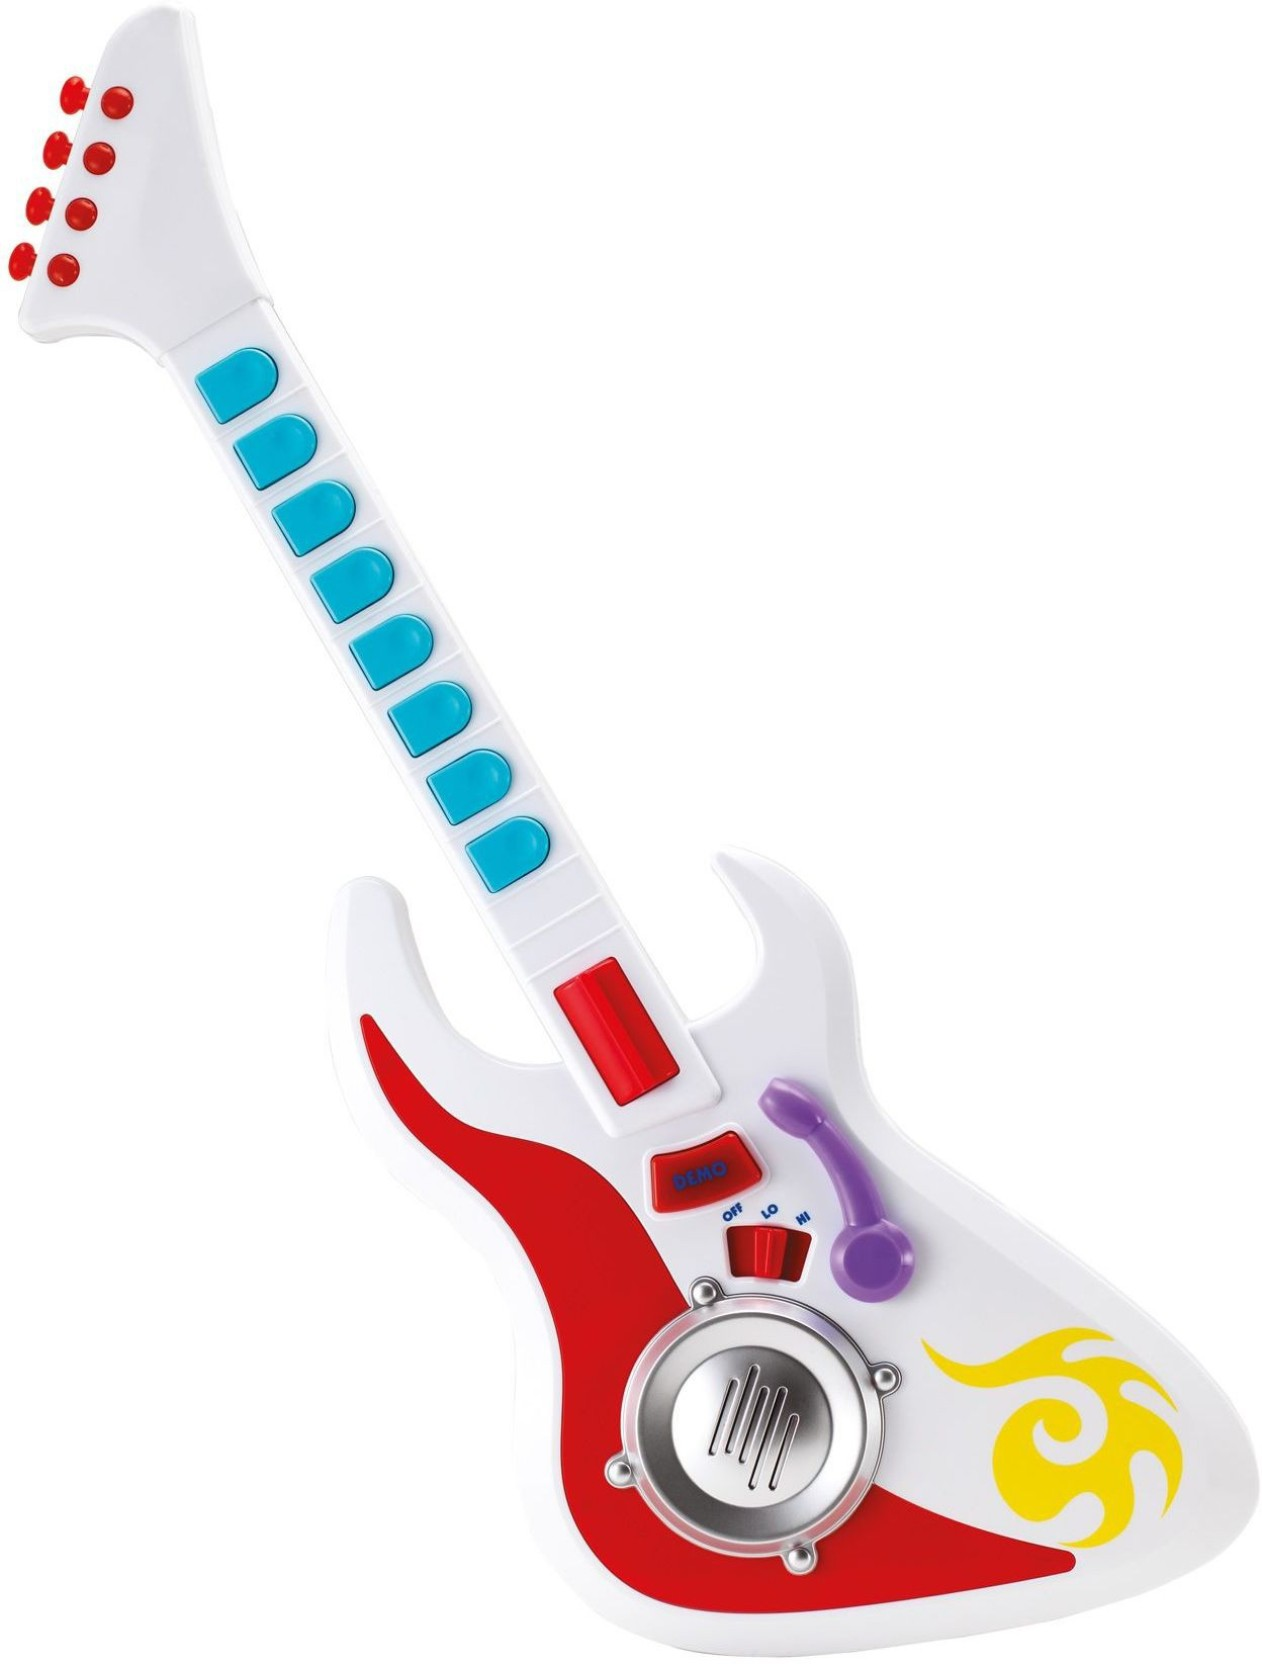 Winfun Cool Sound Guitar Cool Sound Guitar Buy Musical Guitar